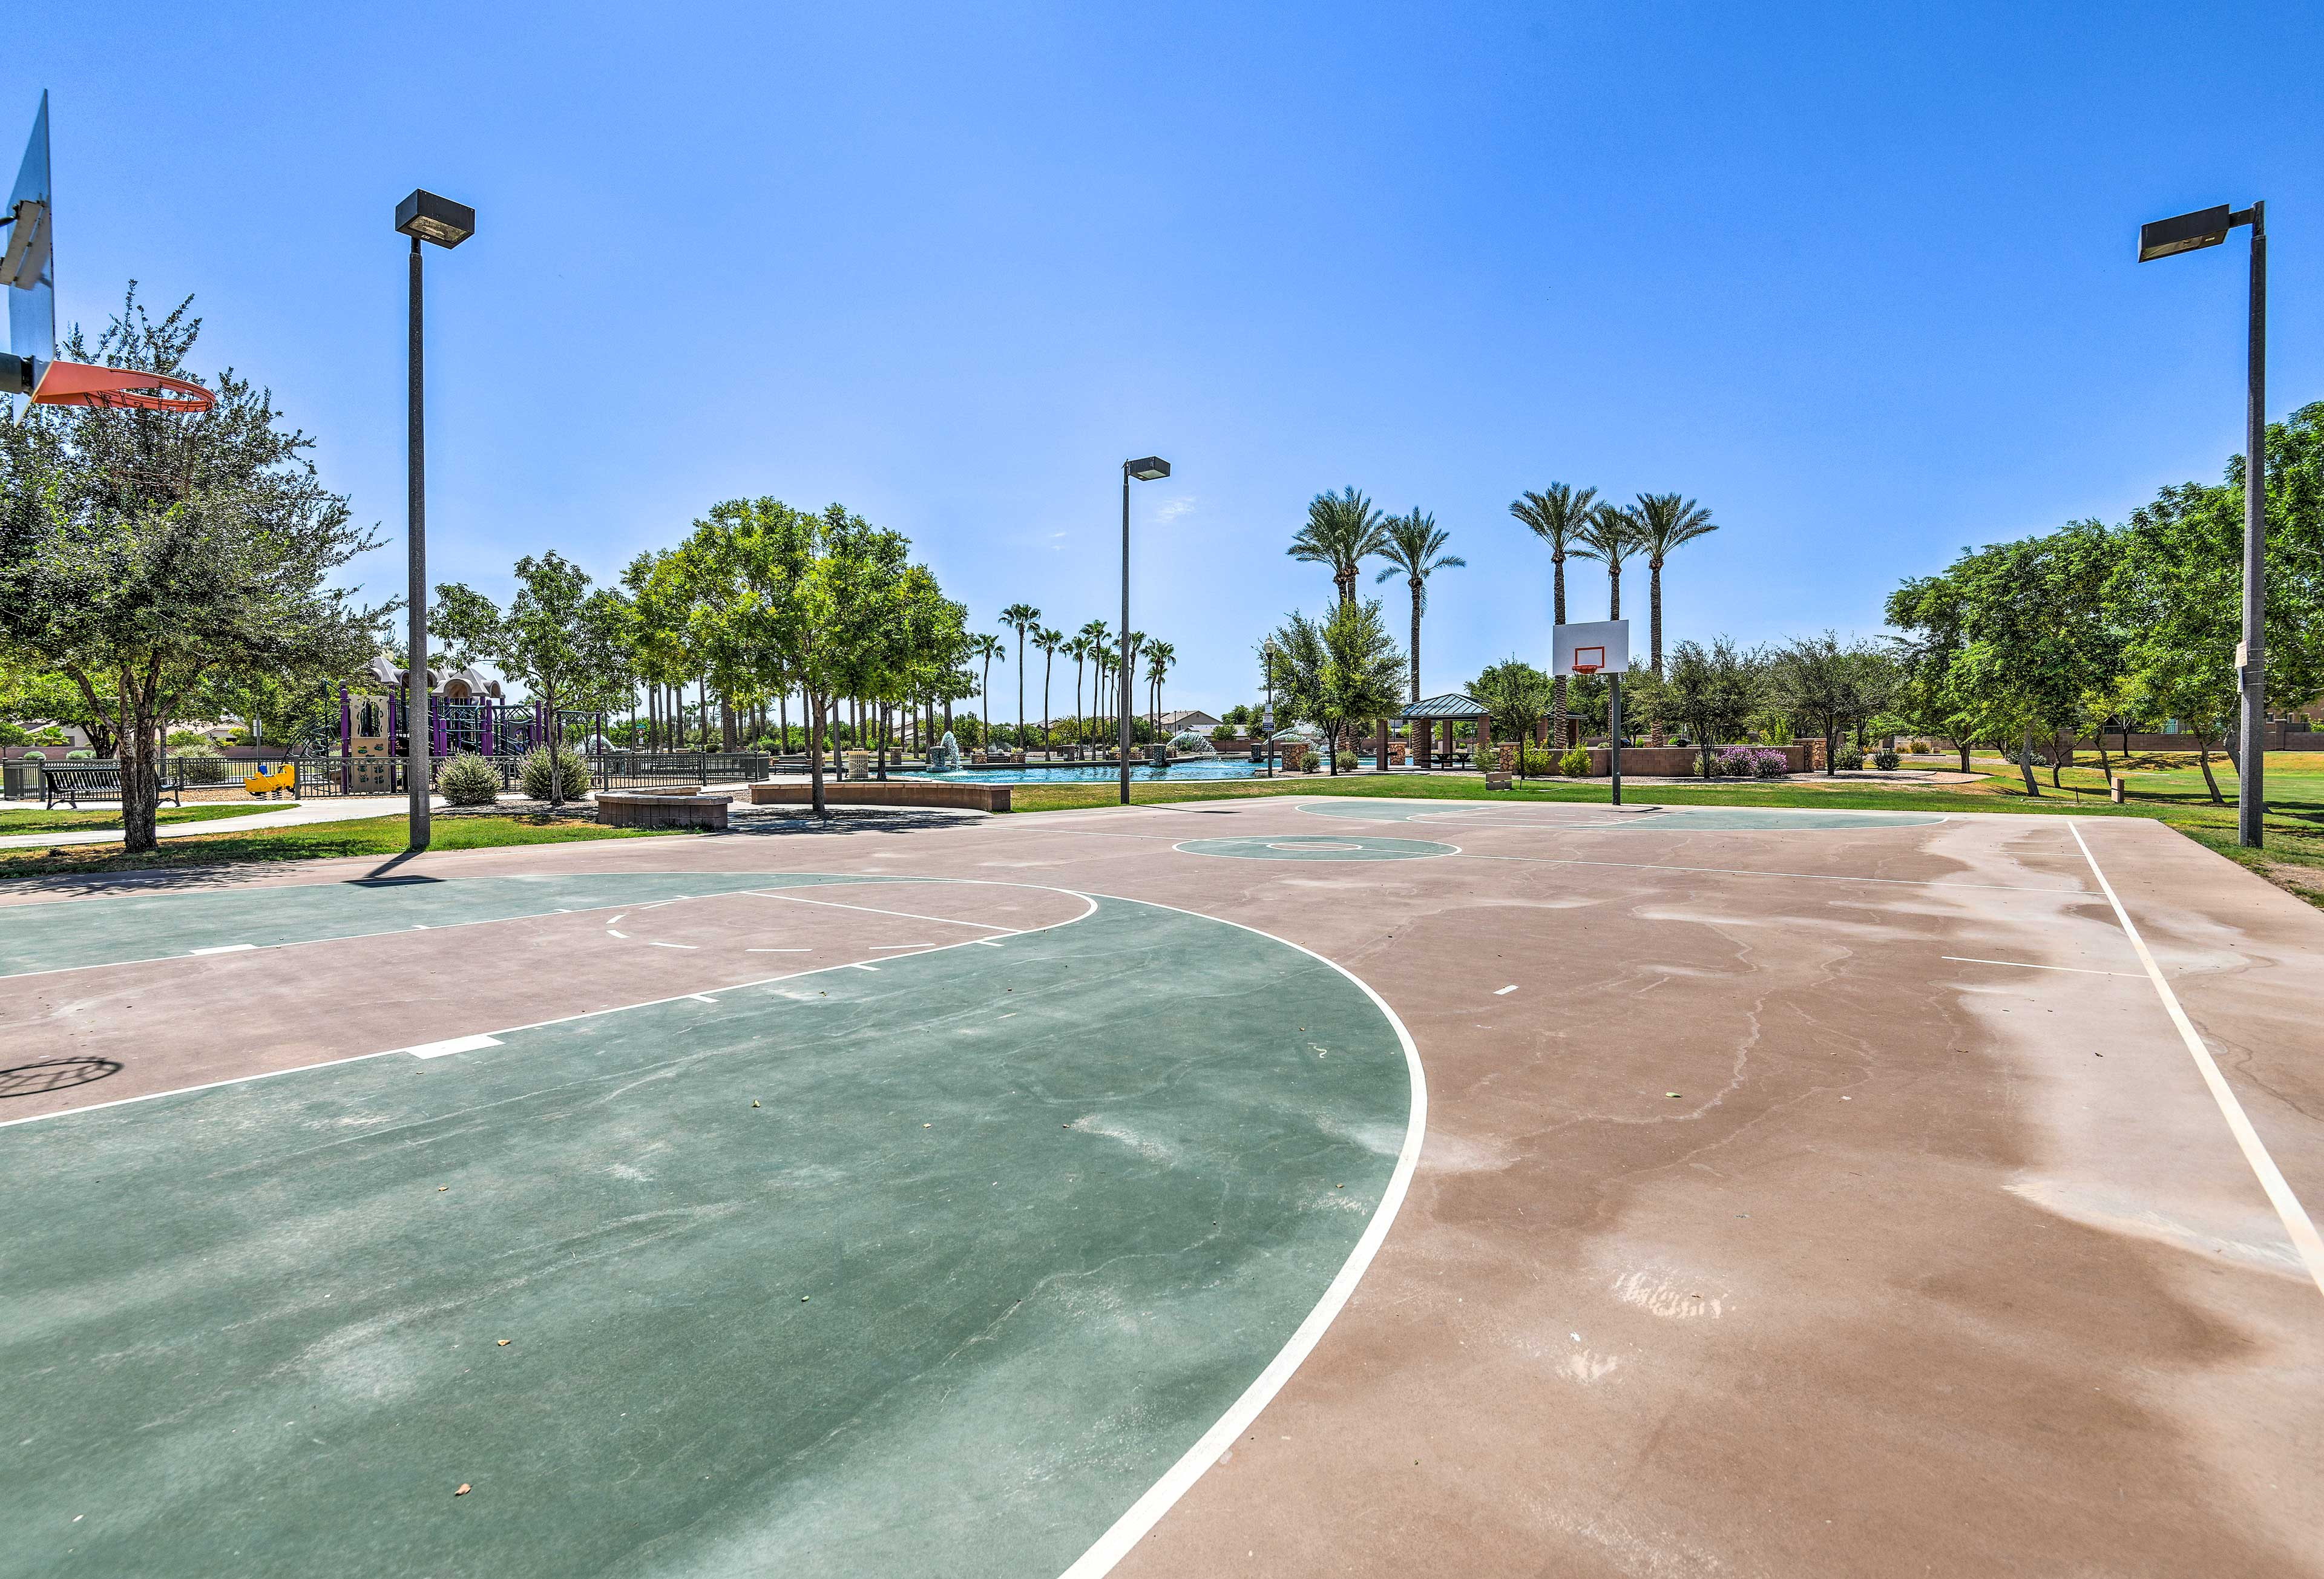 Organize a game of pick-up basketball on the nearby courts!